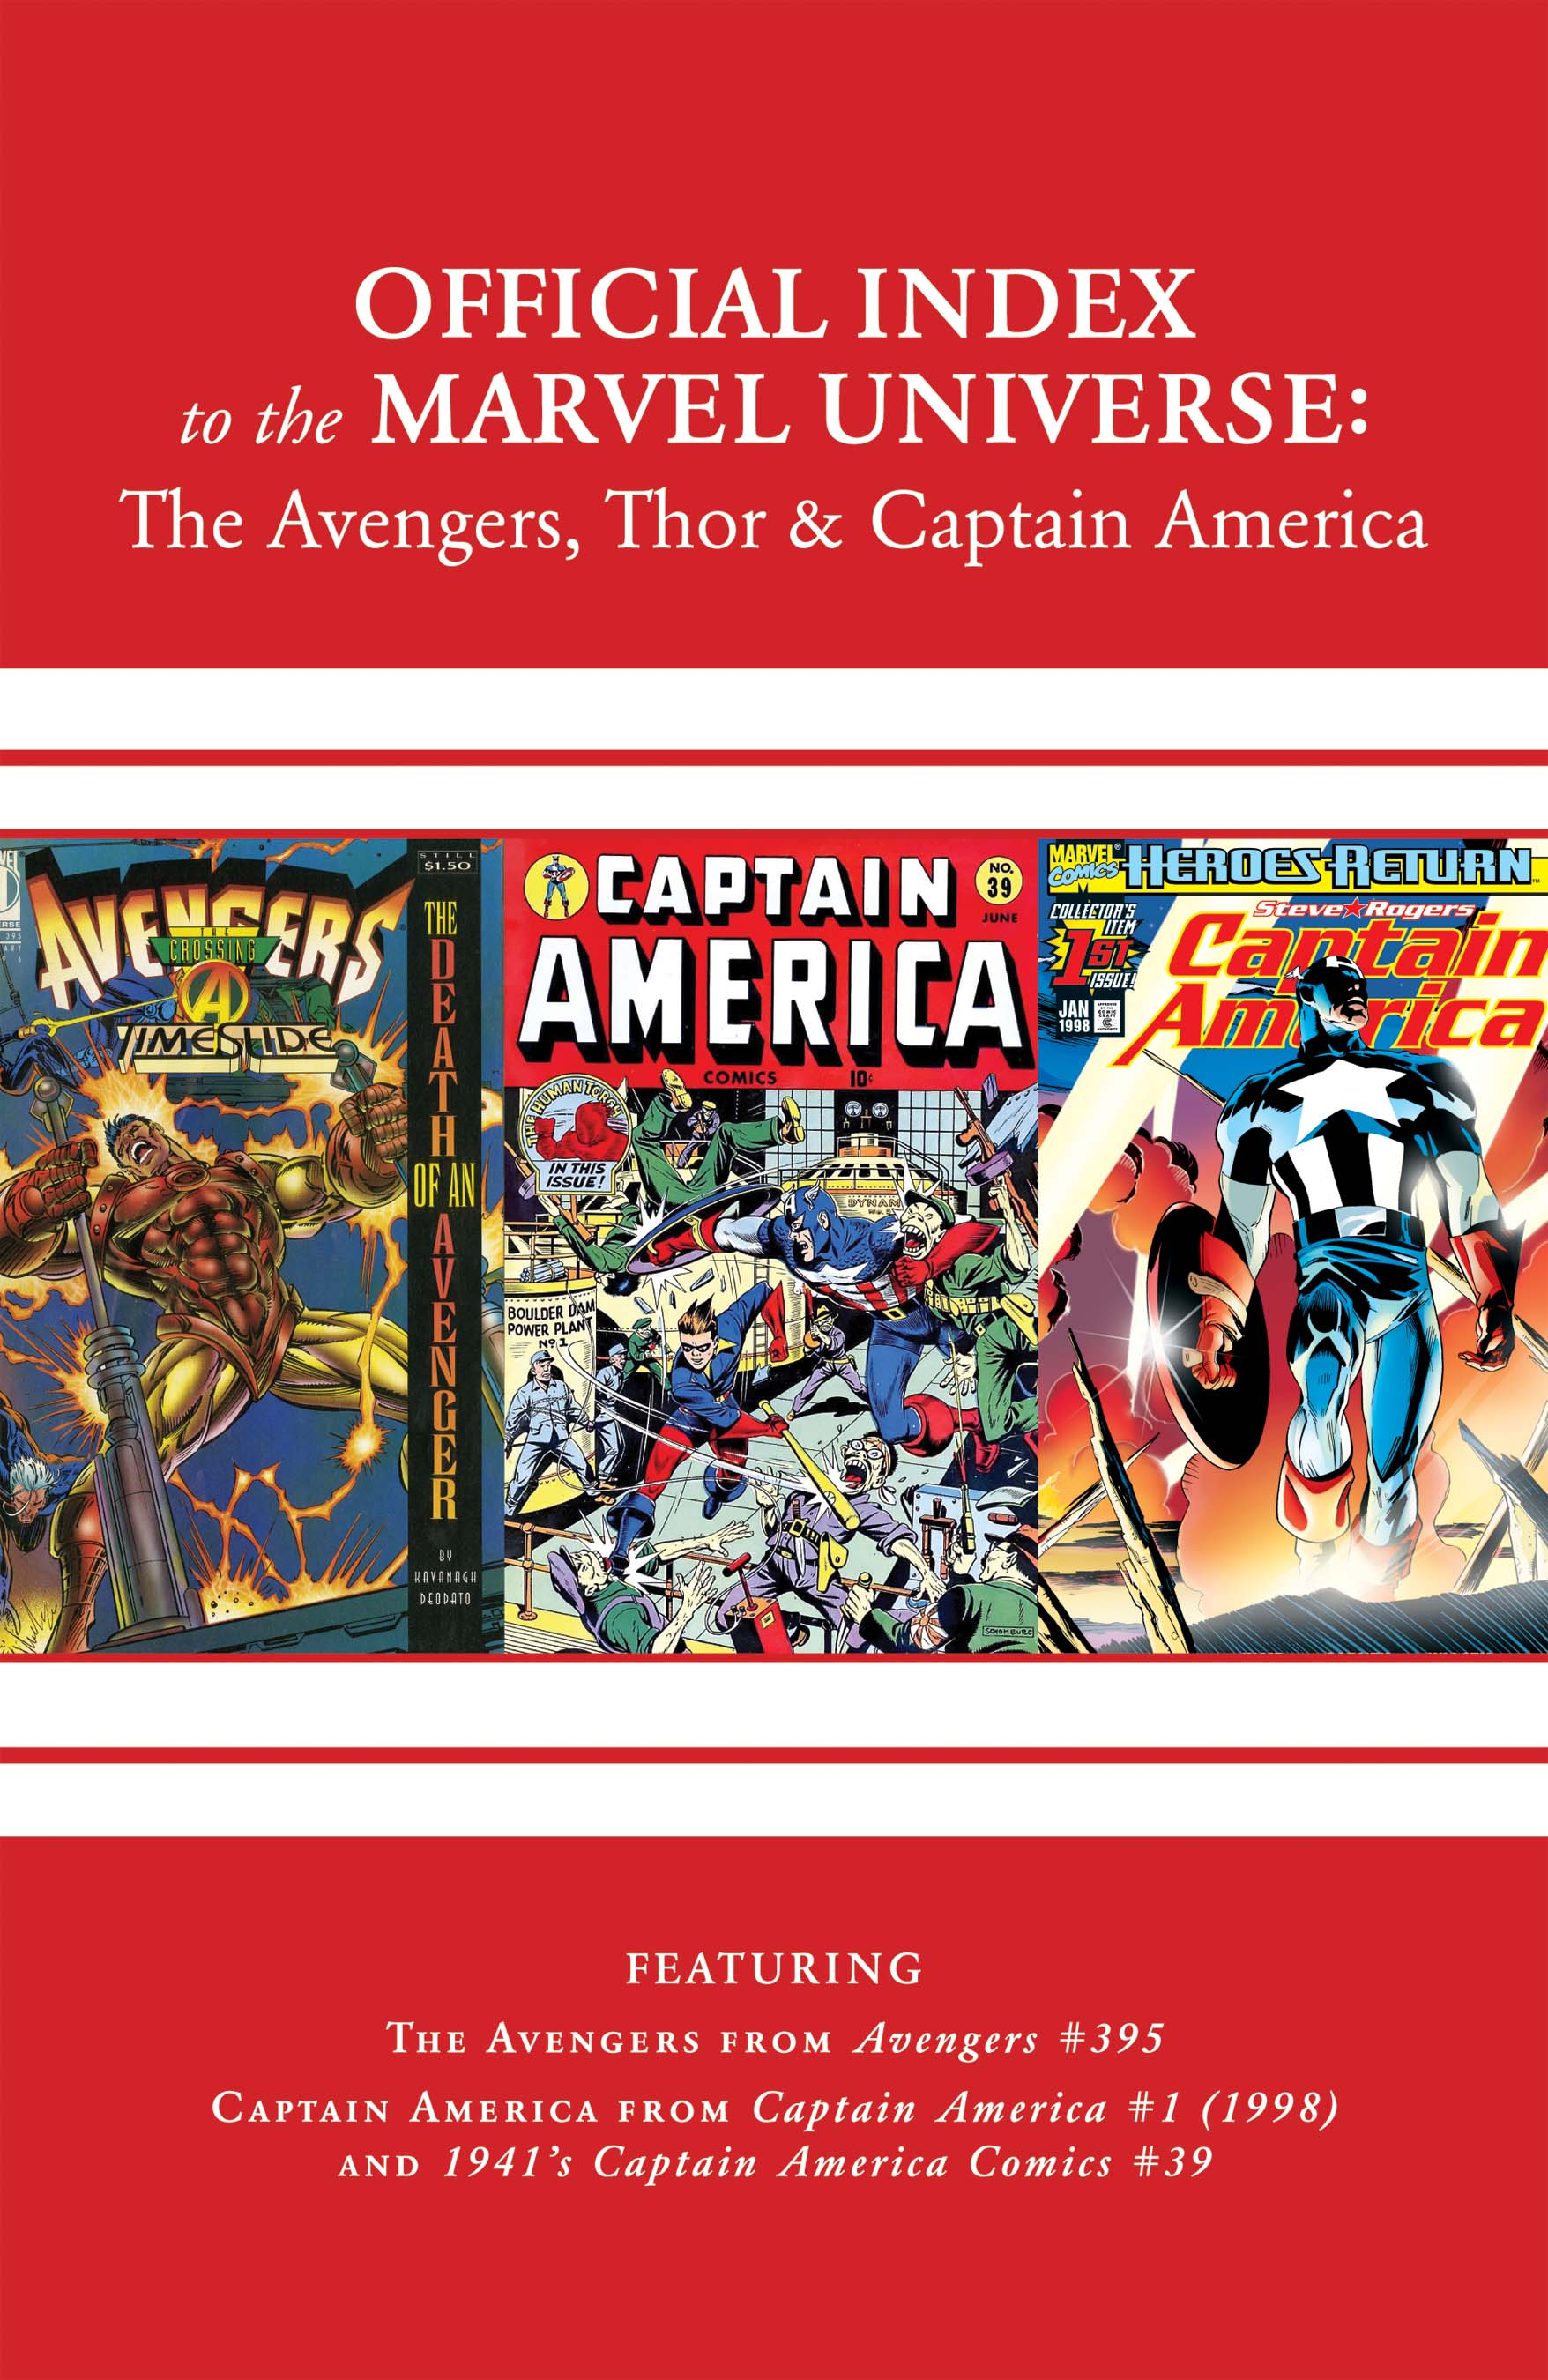 Avengers, Thor & Captain America: Official Index to the Marvel Universe (2011) #13